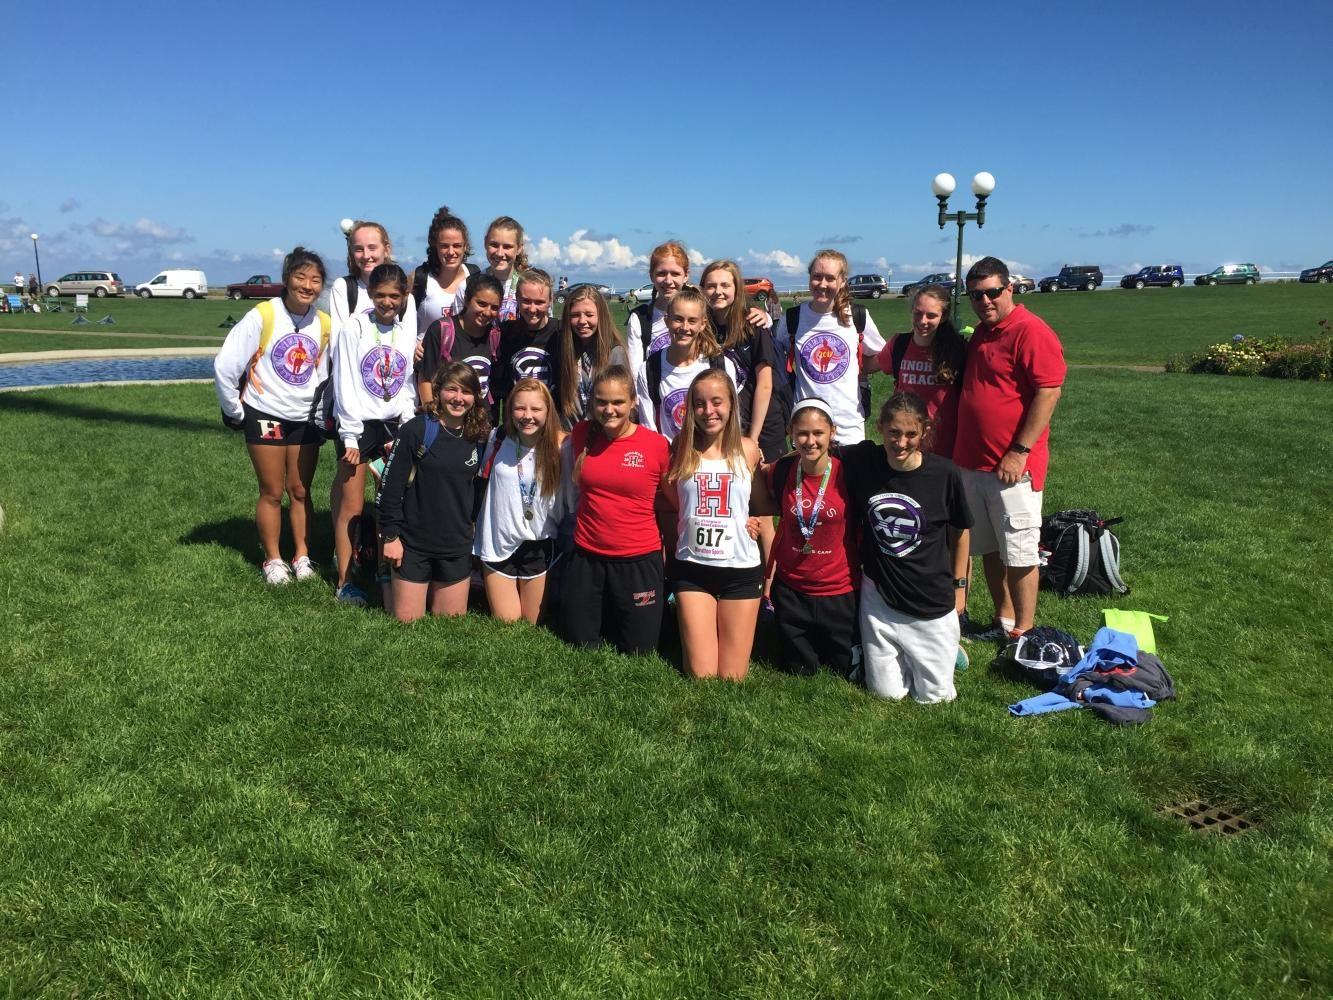 The+Hingham+Girls%27+Cross+Country+team+at+Oak+Bluffs+pose+by+the+water%2C+right+after+finishing+their+races.